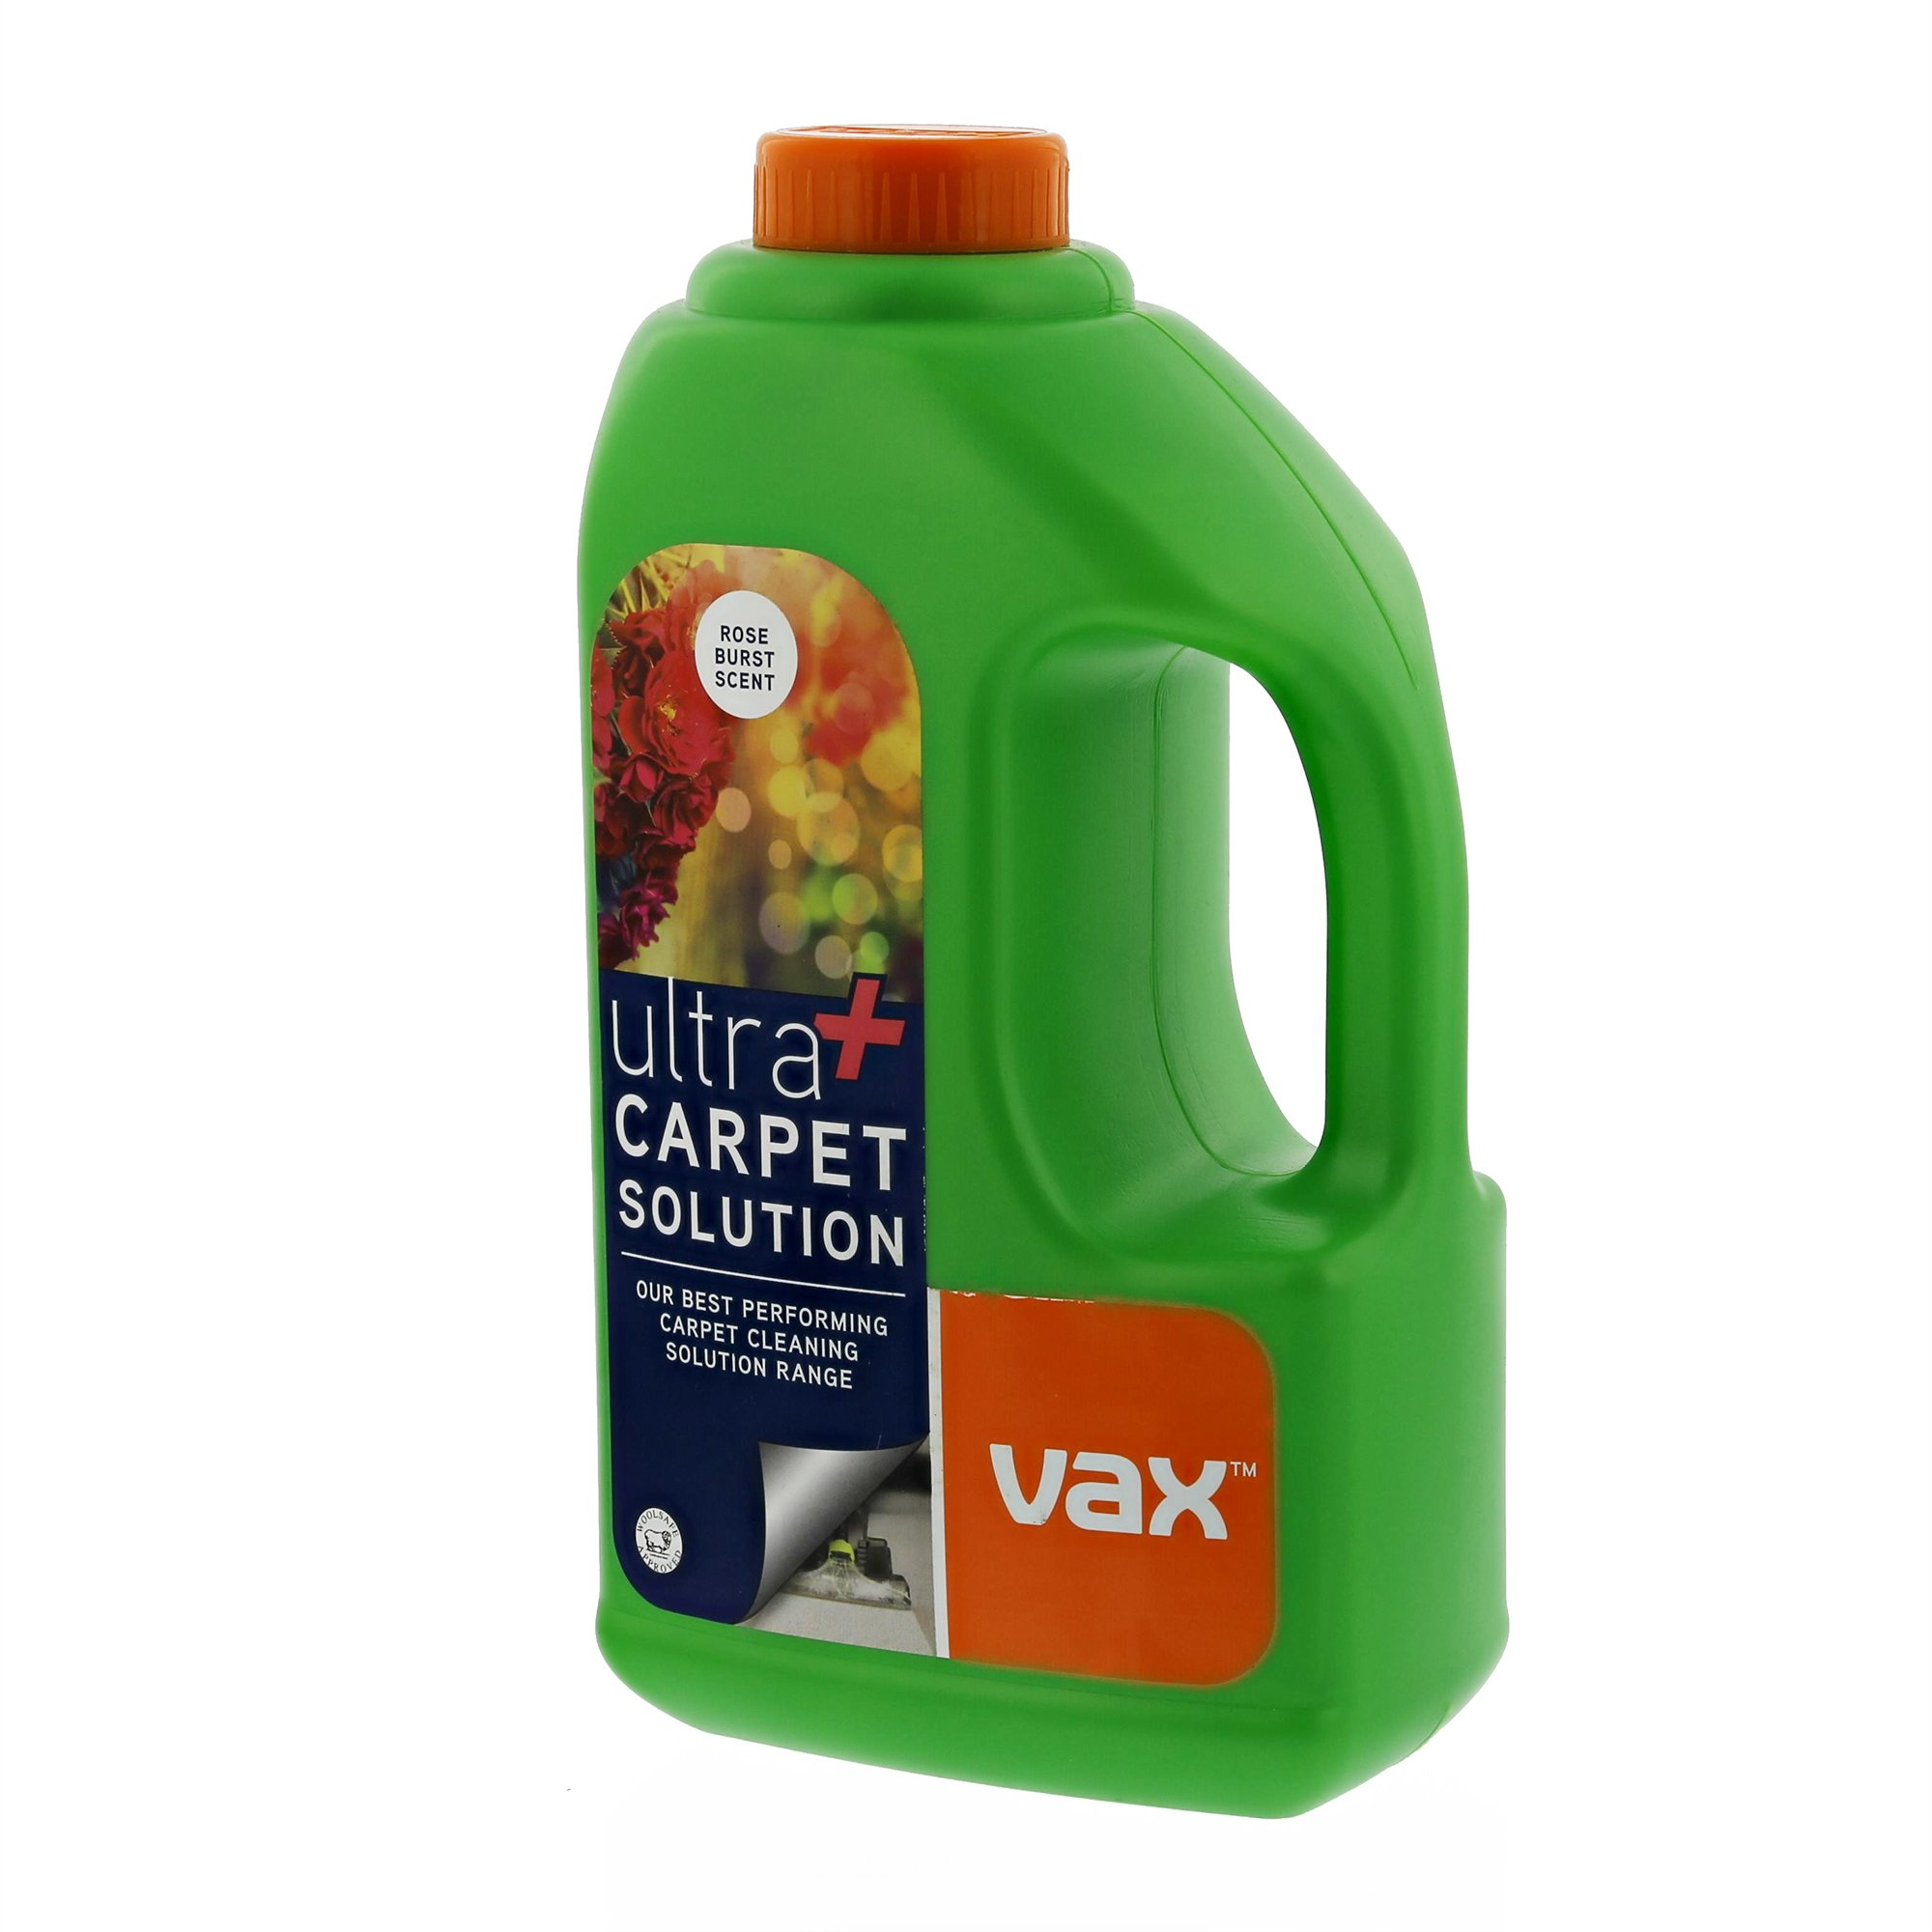 Vax Carpet Cleaner Carpets Shampoo Solution 1 5l New